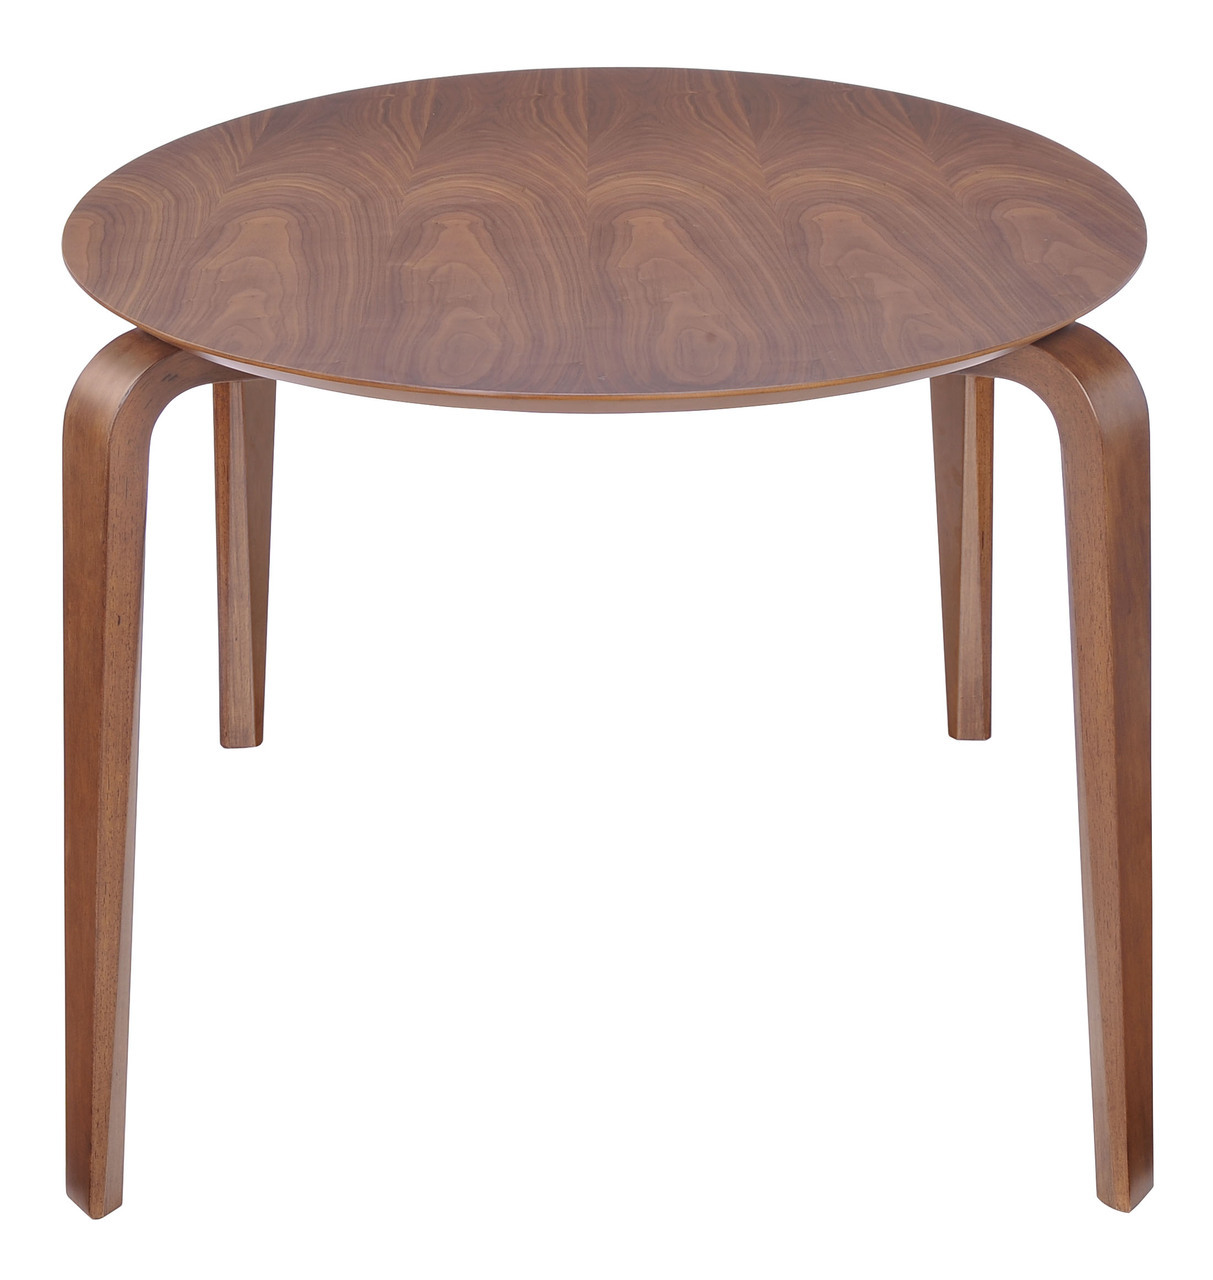 walnut-oval-dining-table.jpg